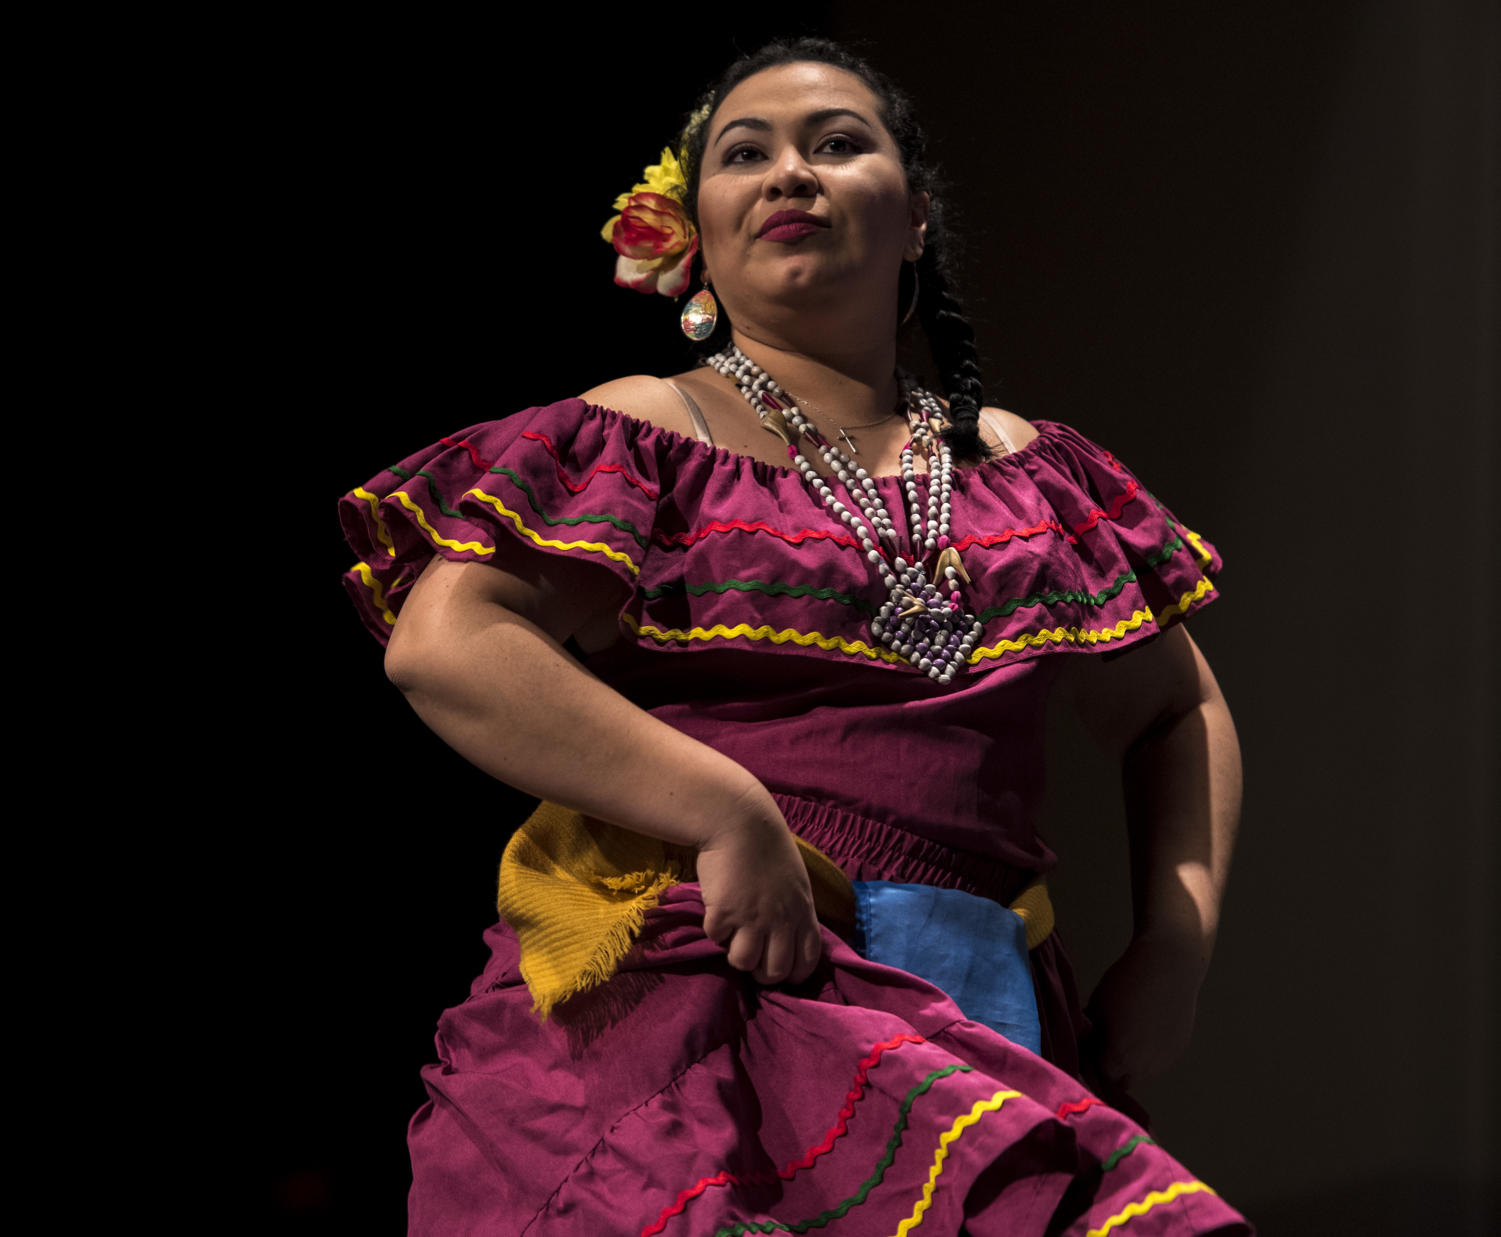 Fany+Martinez%2C+a+graduate+student+studying+language+and+literature+from+Honduras%2C+dances+the+Punta%2C+Friday%2C+Feb.+9%2C+2018%2C+inside+the+Student+Center+Ballrooms+during+the+International+Festival+Cultural+Show.+%28Mary+Newman+%7C+%40MaryNewmanDE%29